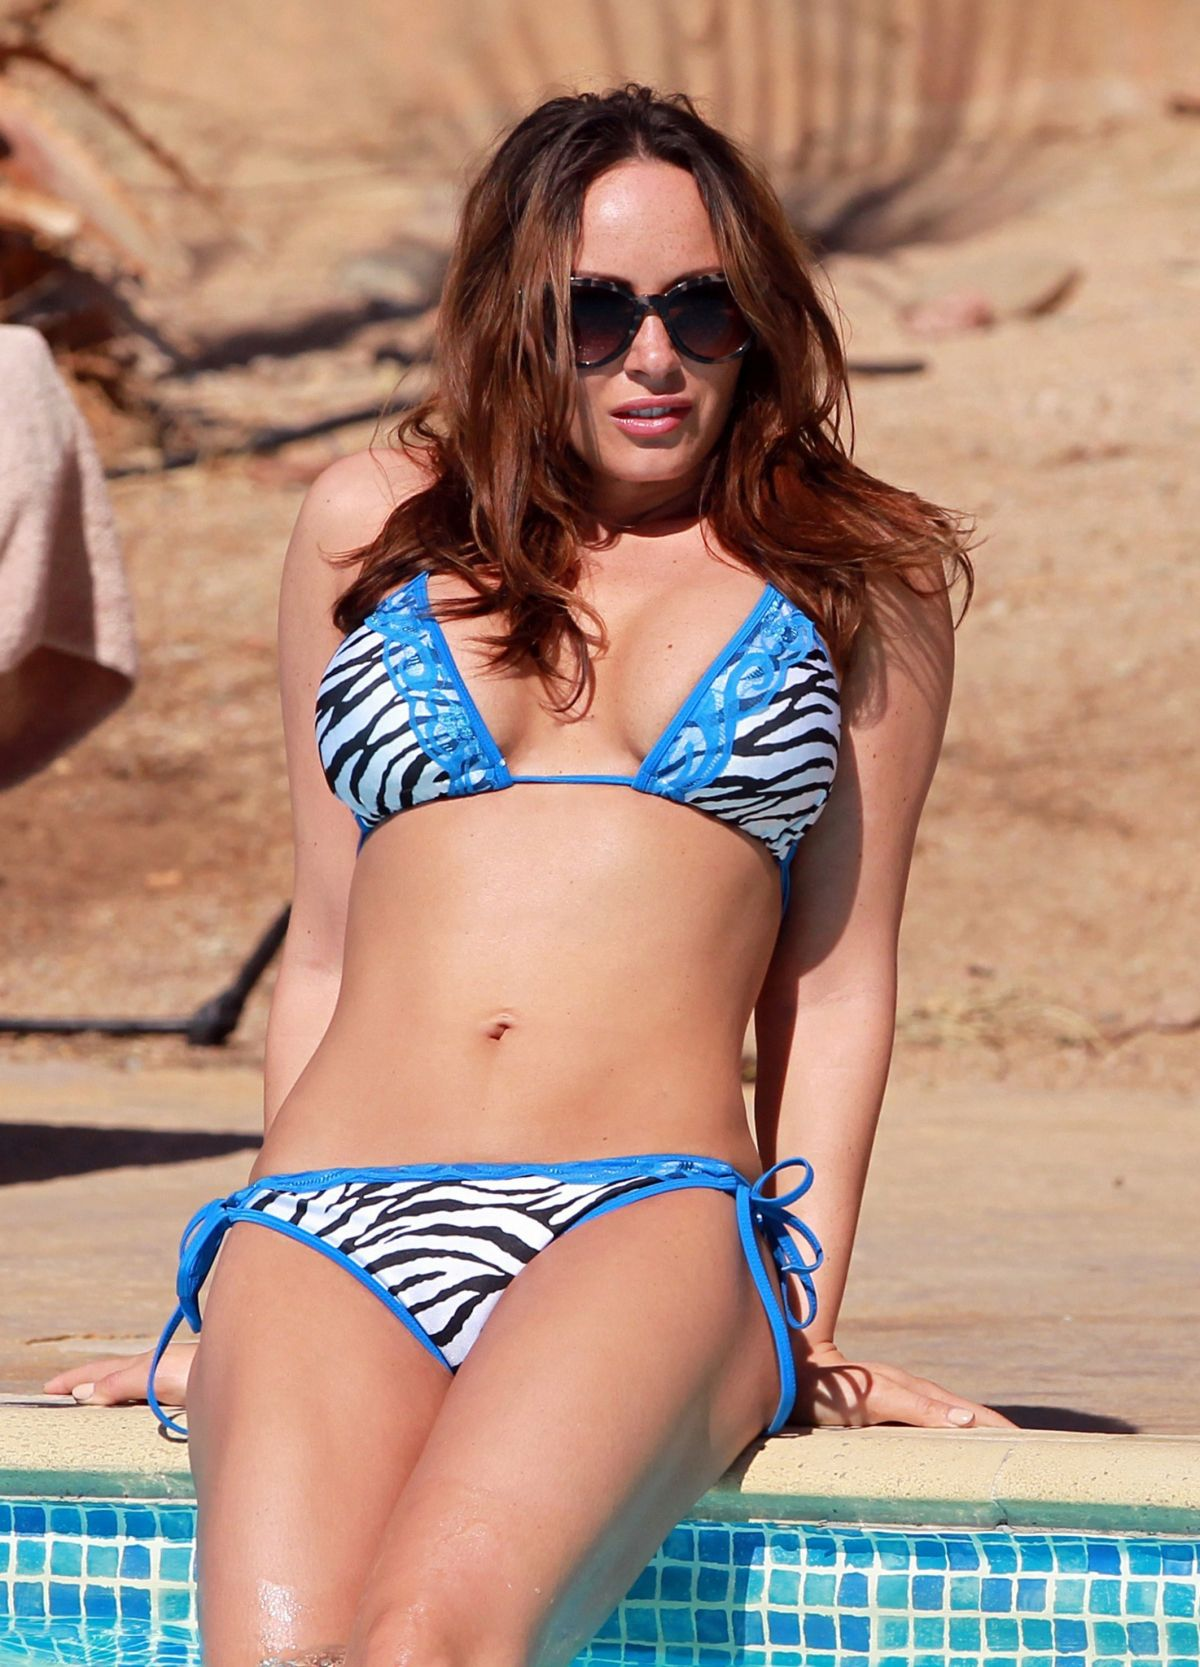 CHANELLE HAYES in Bikini at a Pool in Egypt